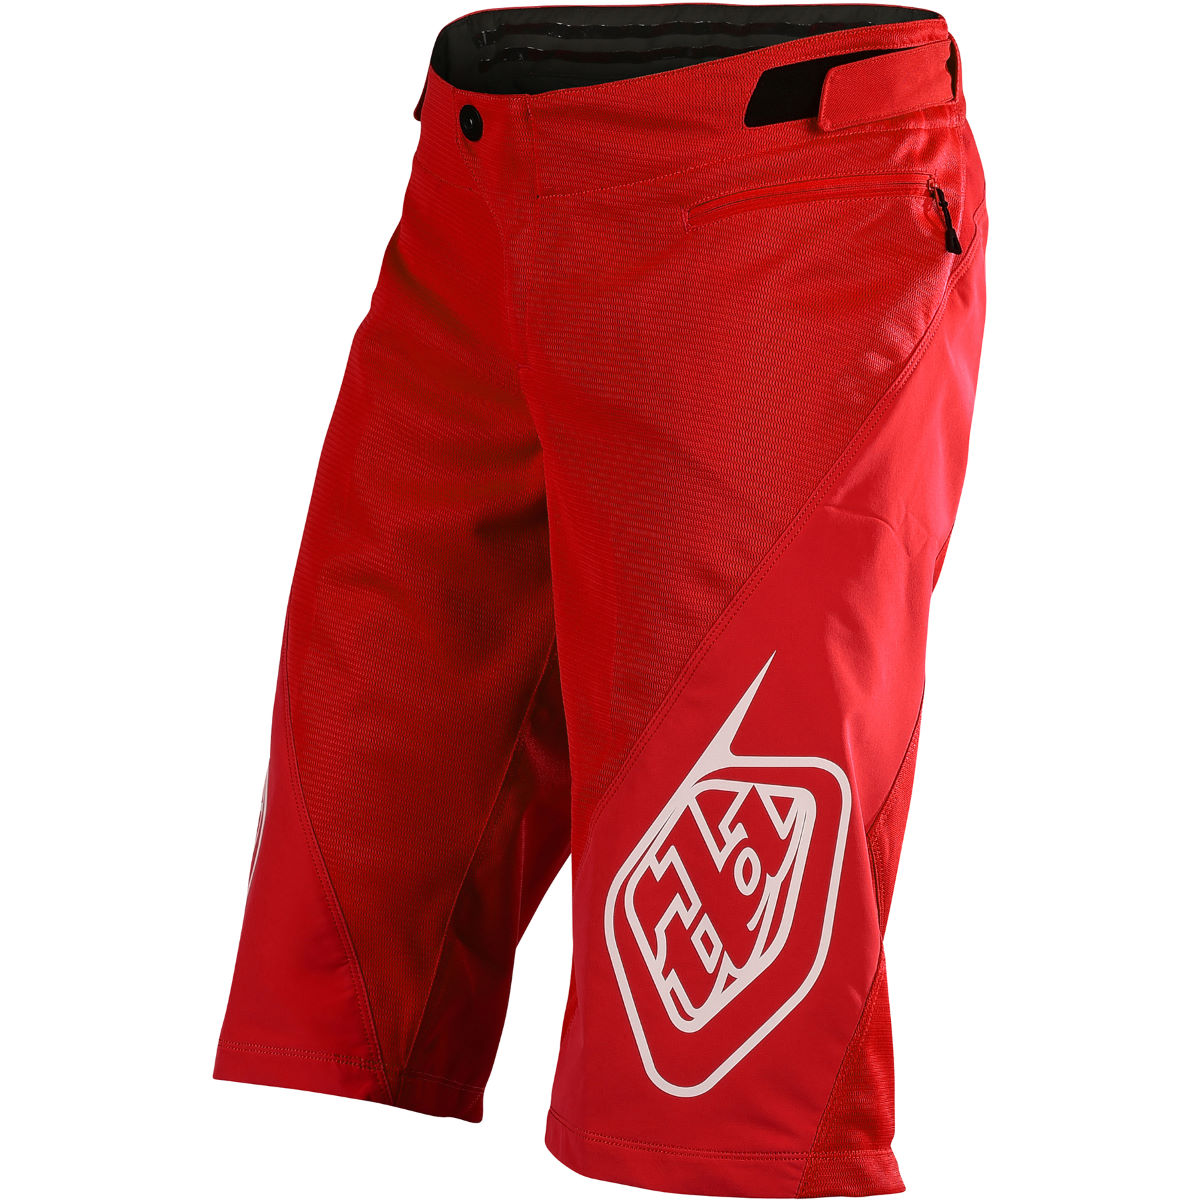 Troy Lee Designs Troy Lee Designs Sprint Youth Shorts   Baggy Shorts